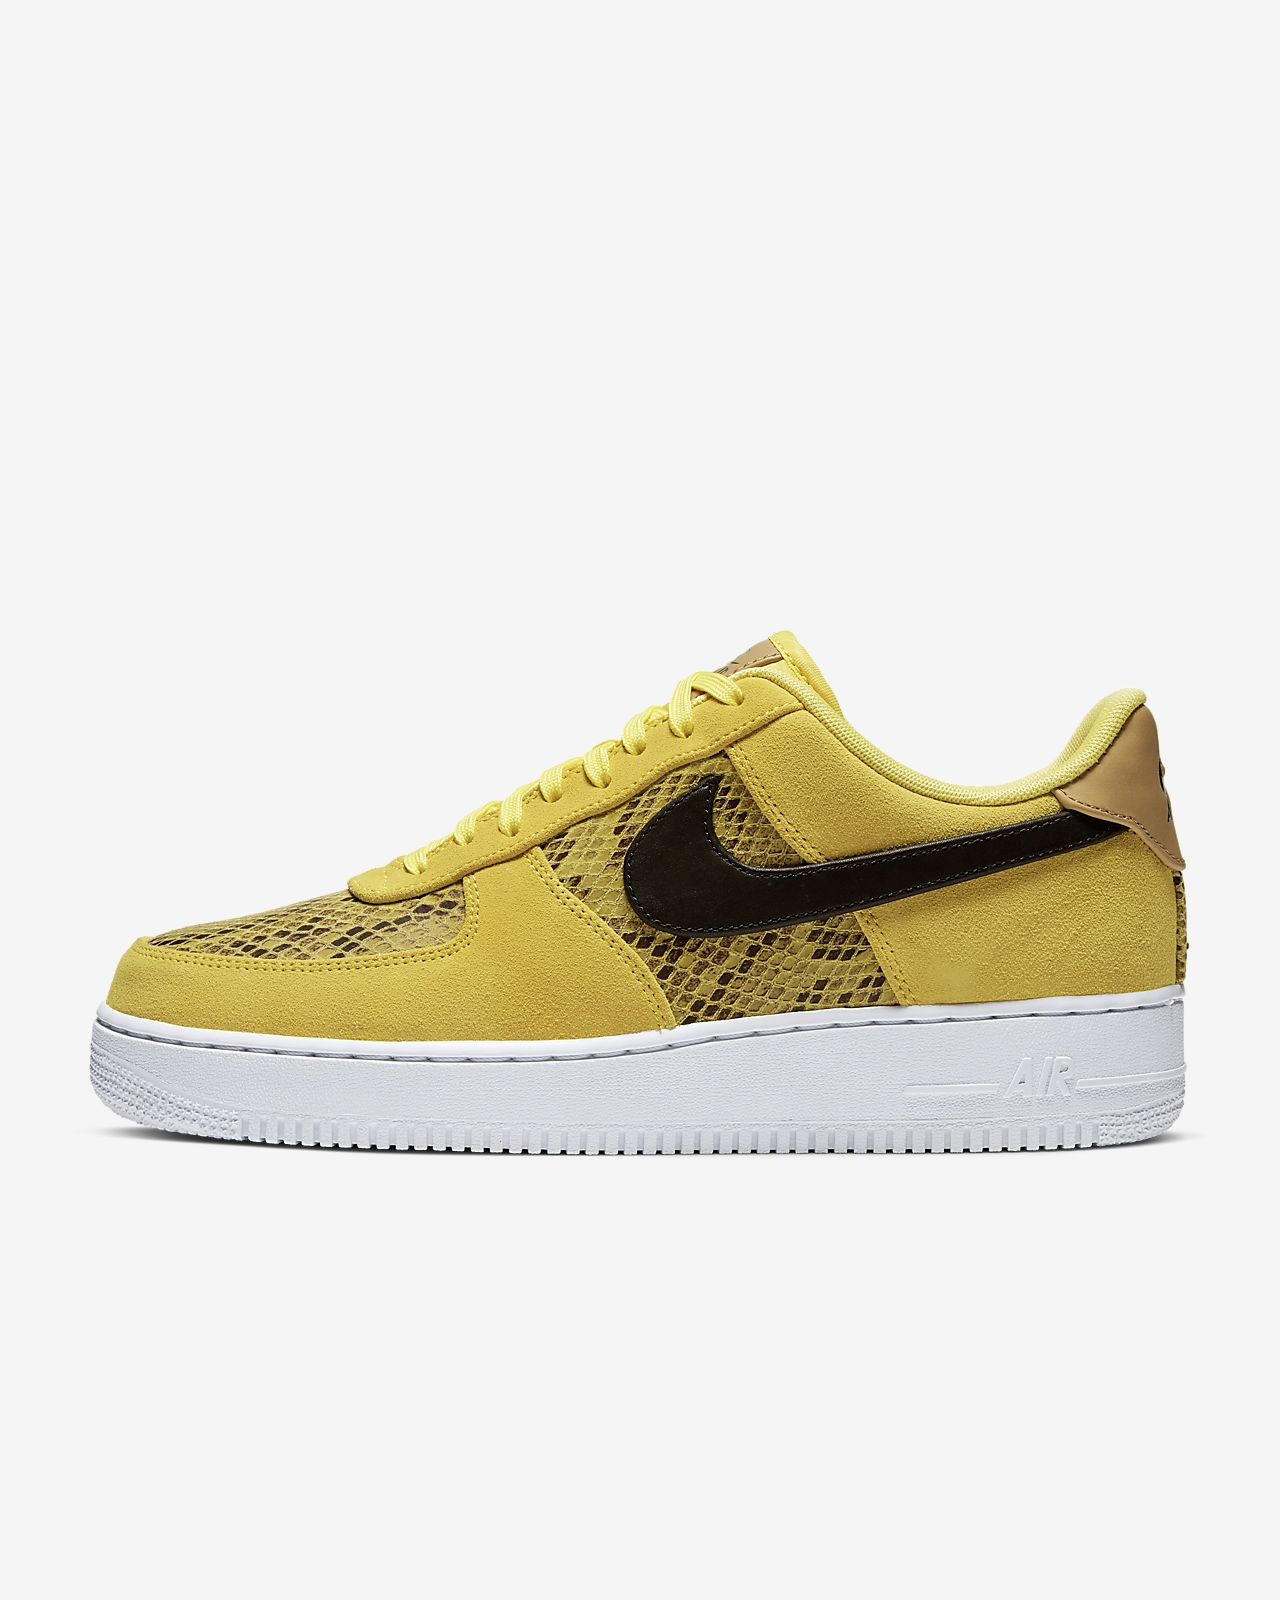 Shoes Nike Air Force 1 ´07 Premium